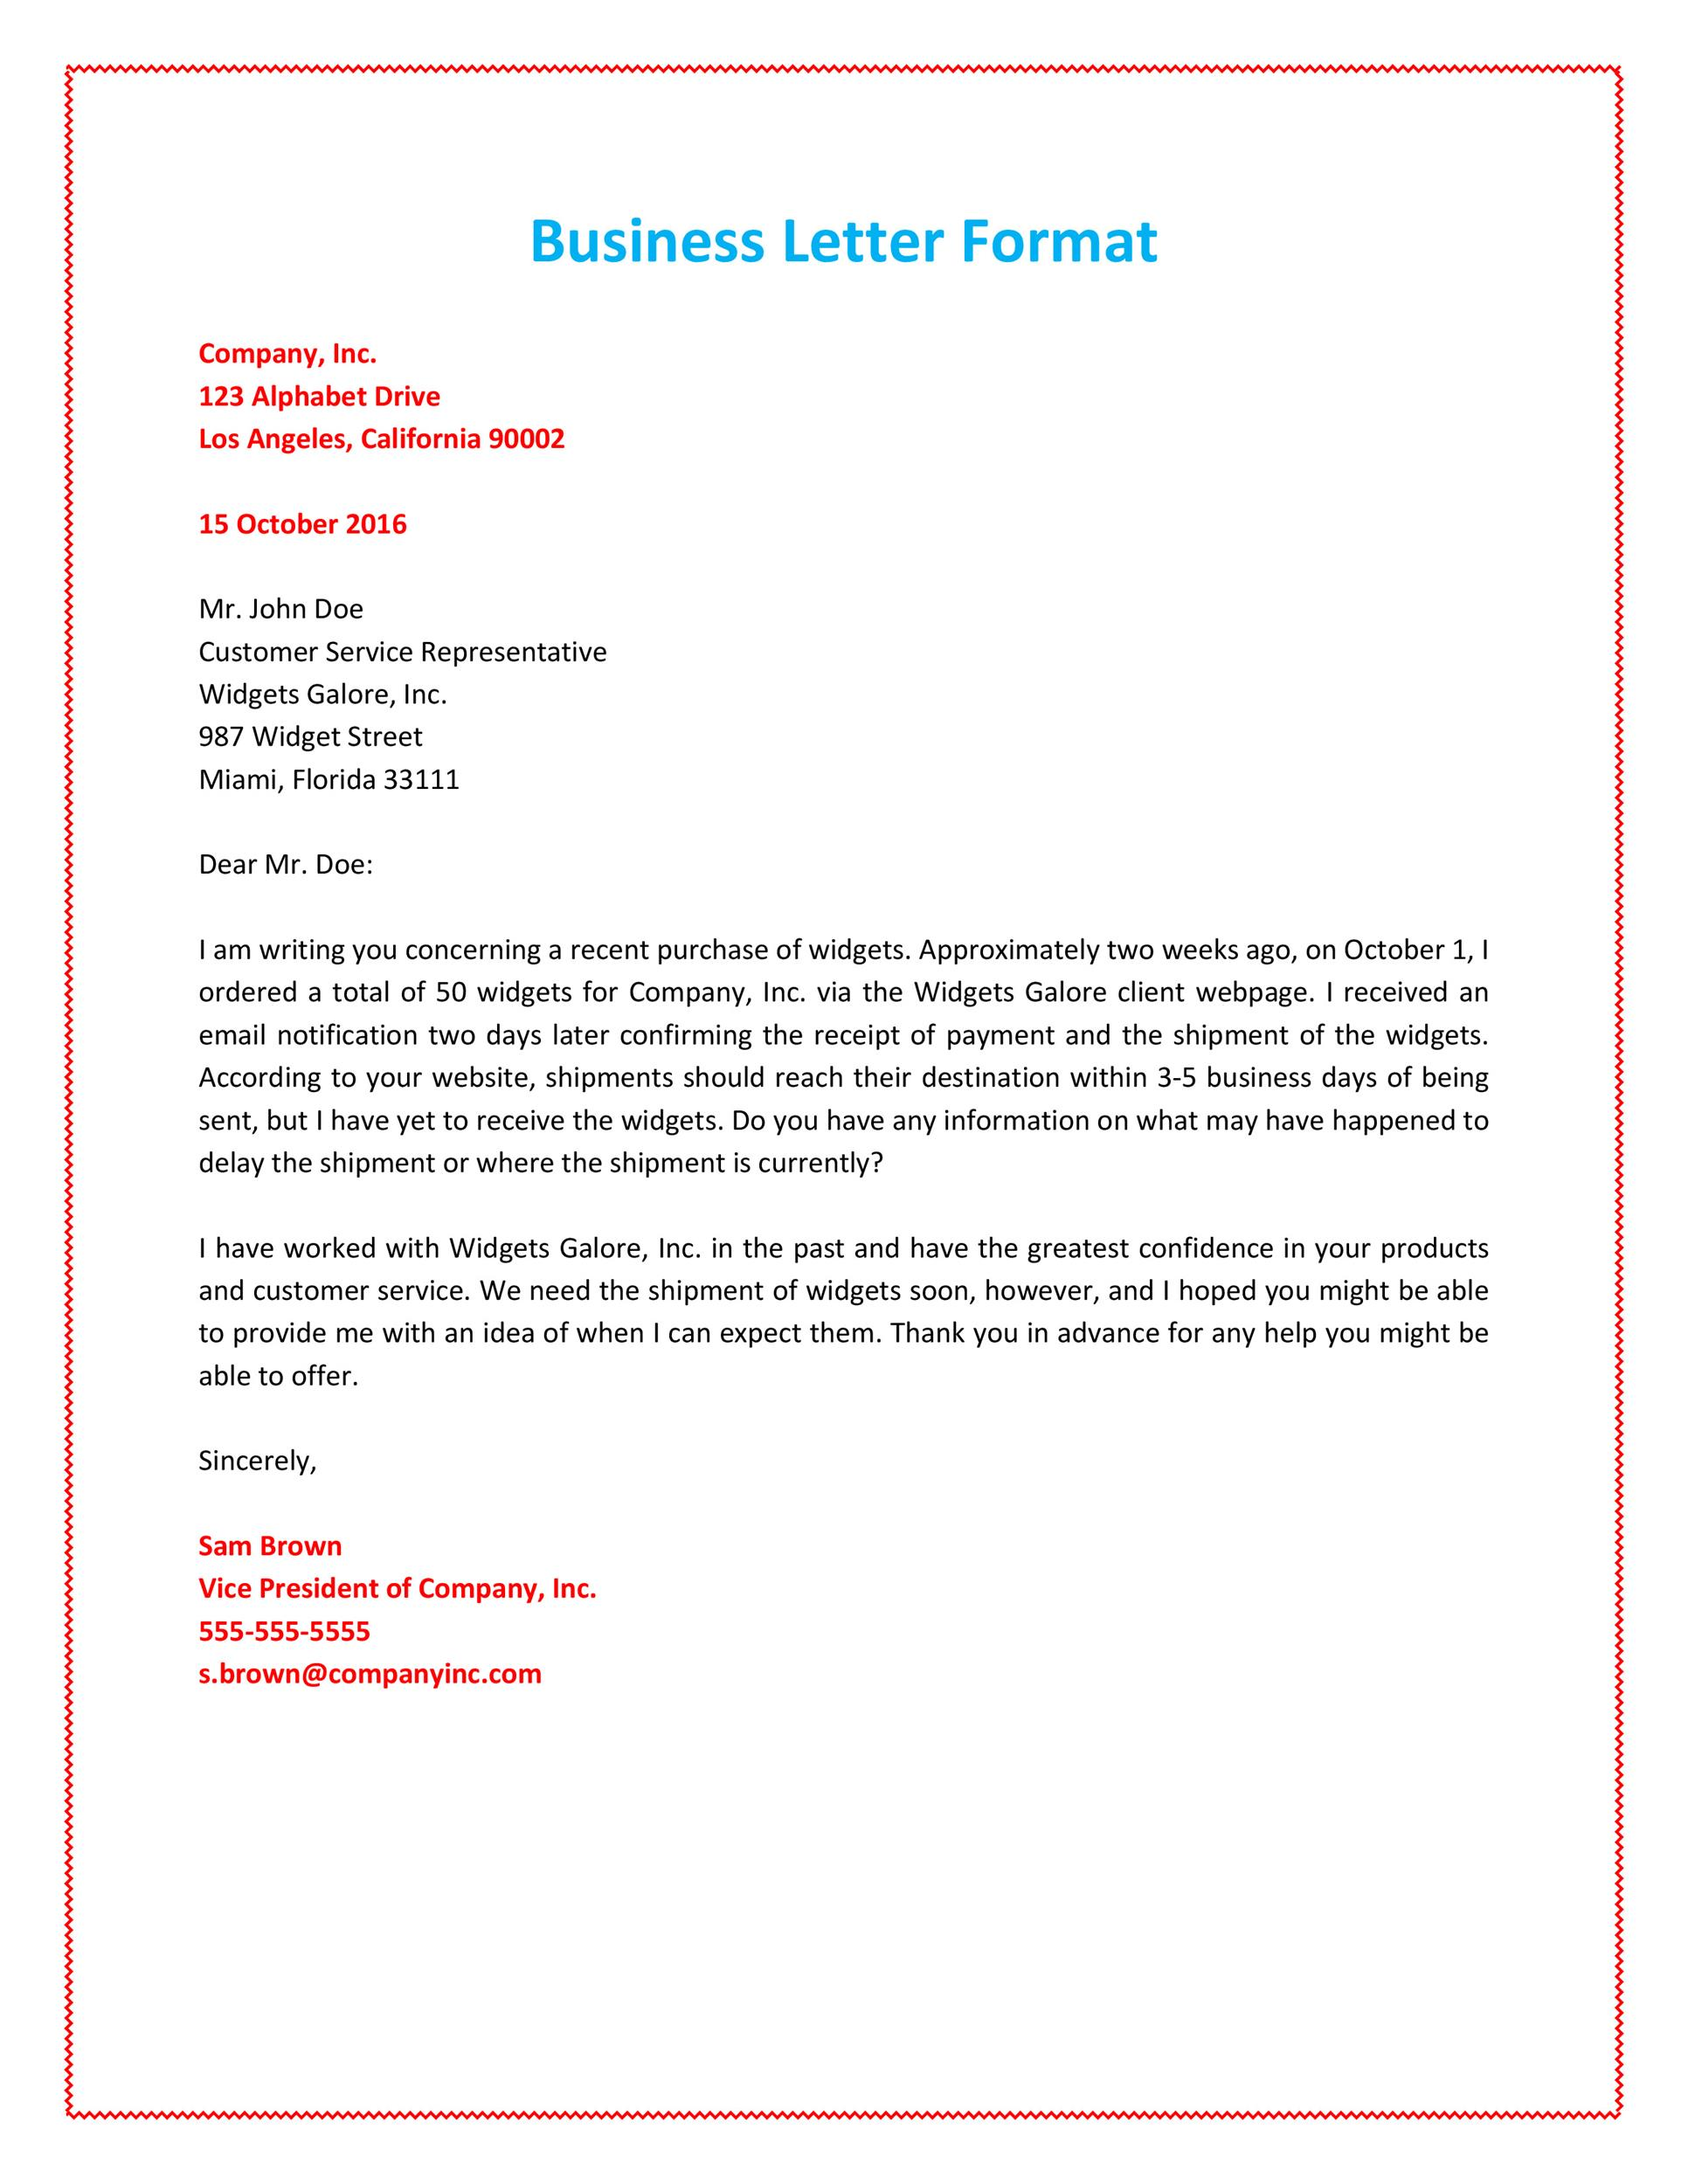 Letter format idoaheybe 35 formal business letter format templates examples template lab altavistaventures Choice Image